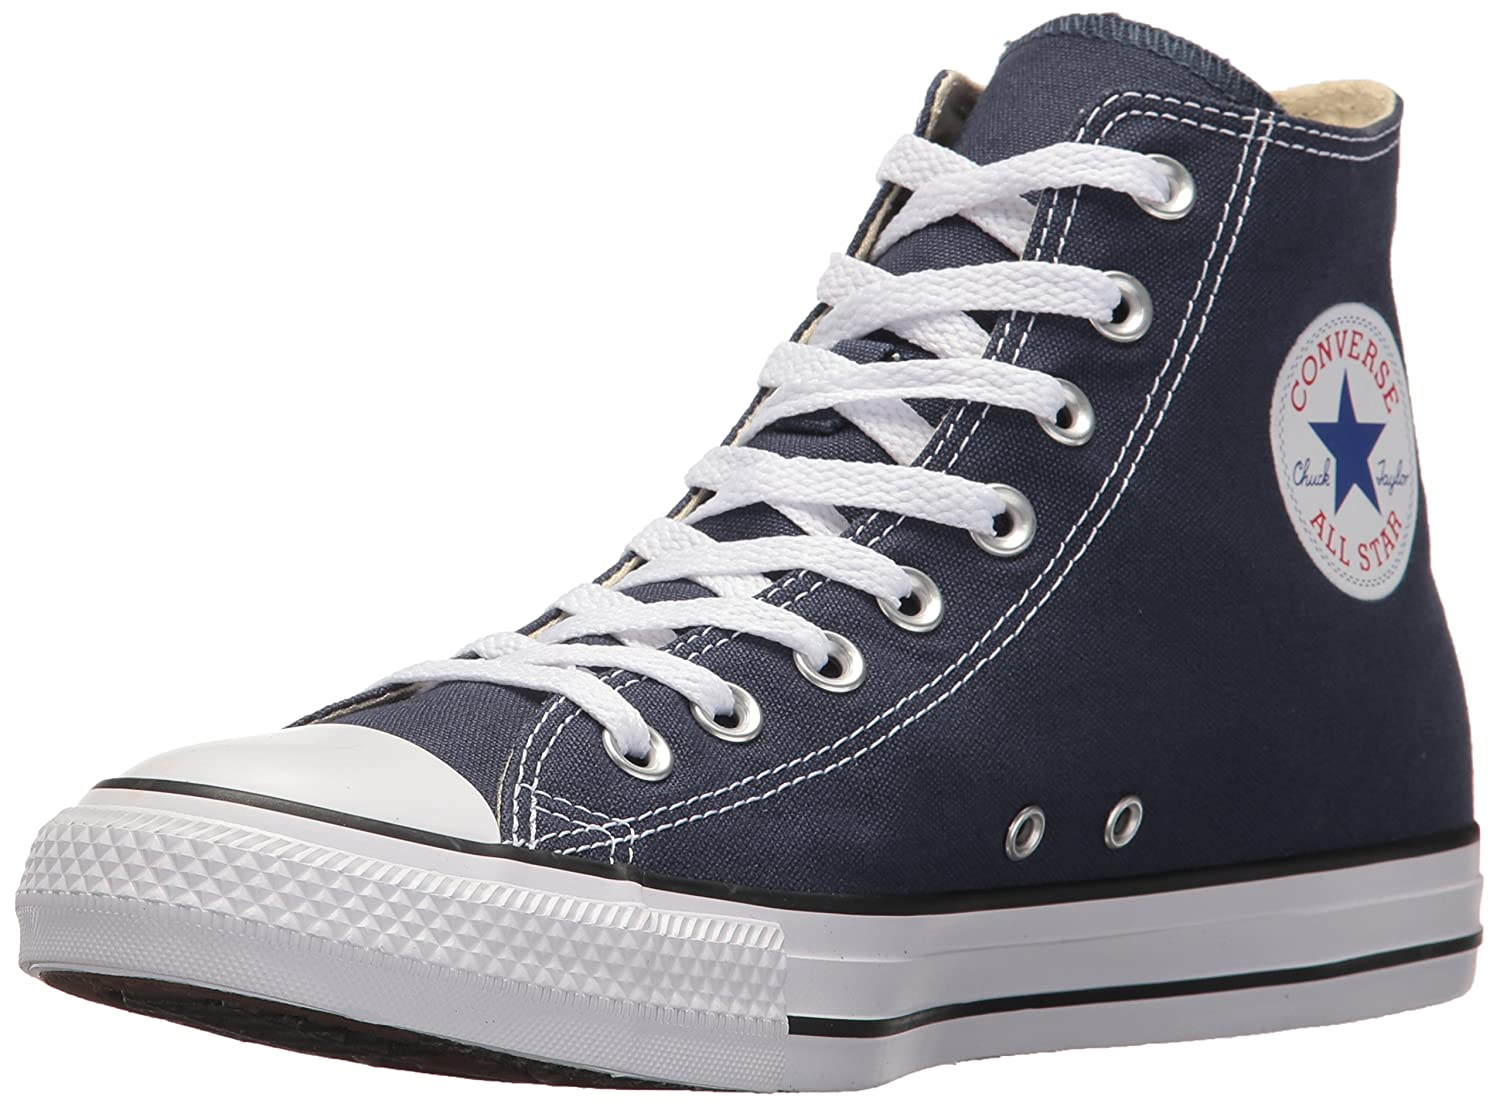 Converse AS Hi Can charcoal 1J793 Unisex-Erwachsene Sneaker  10.5 US Women / 8.5 US Men|Navy